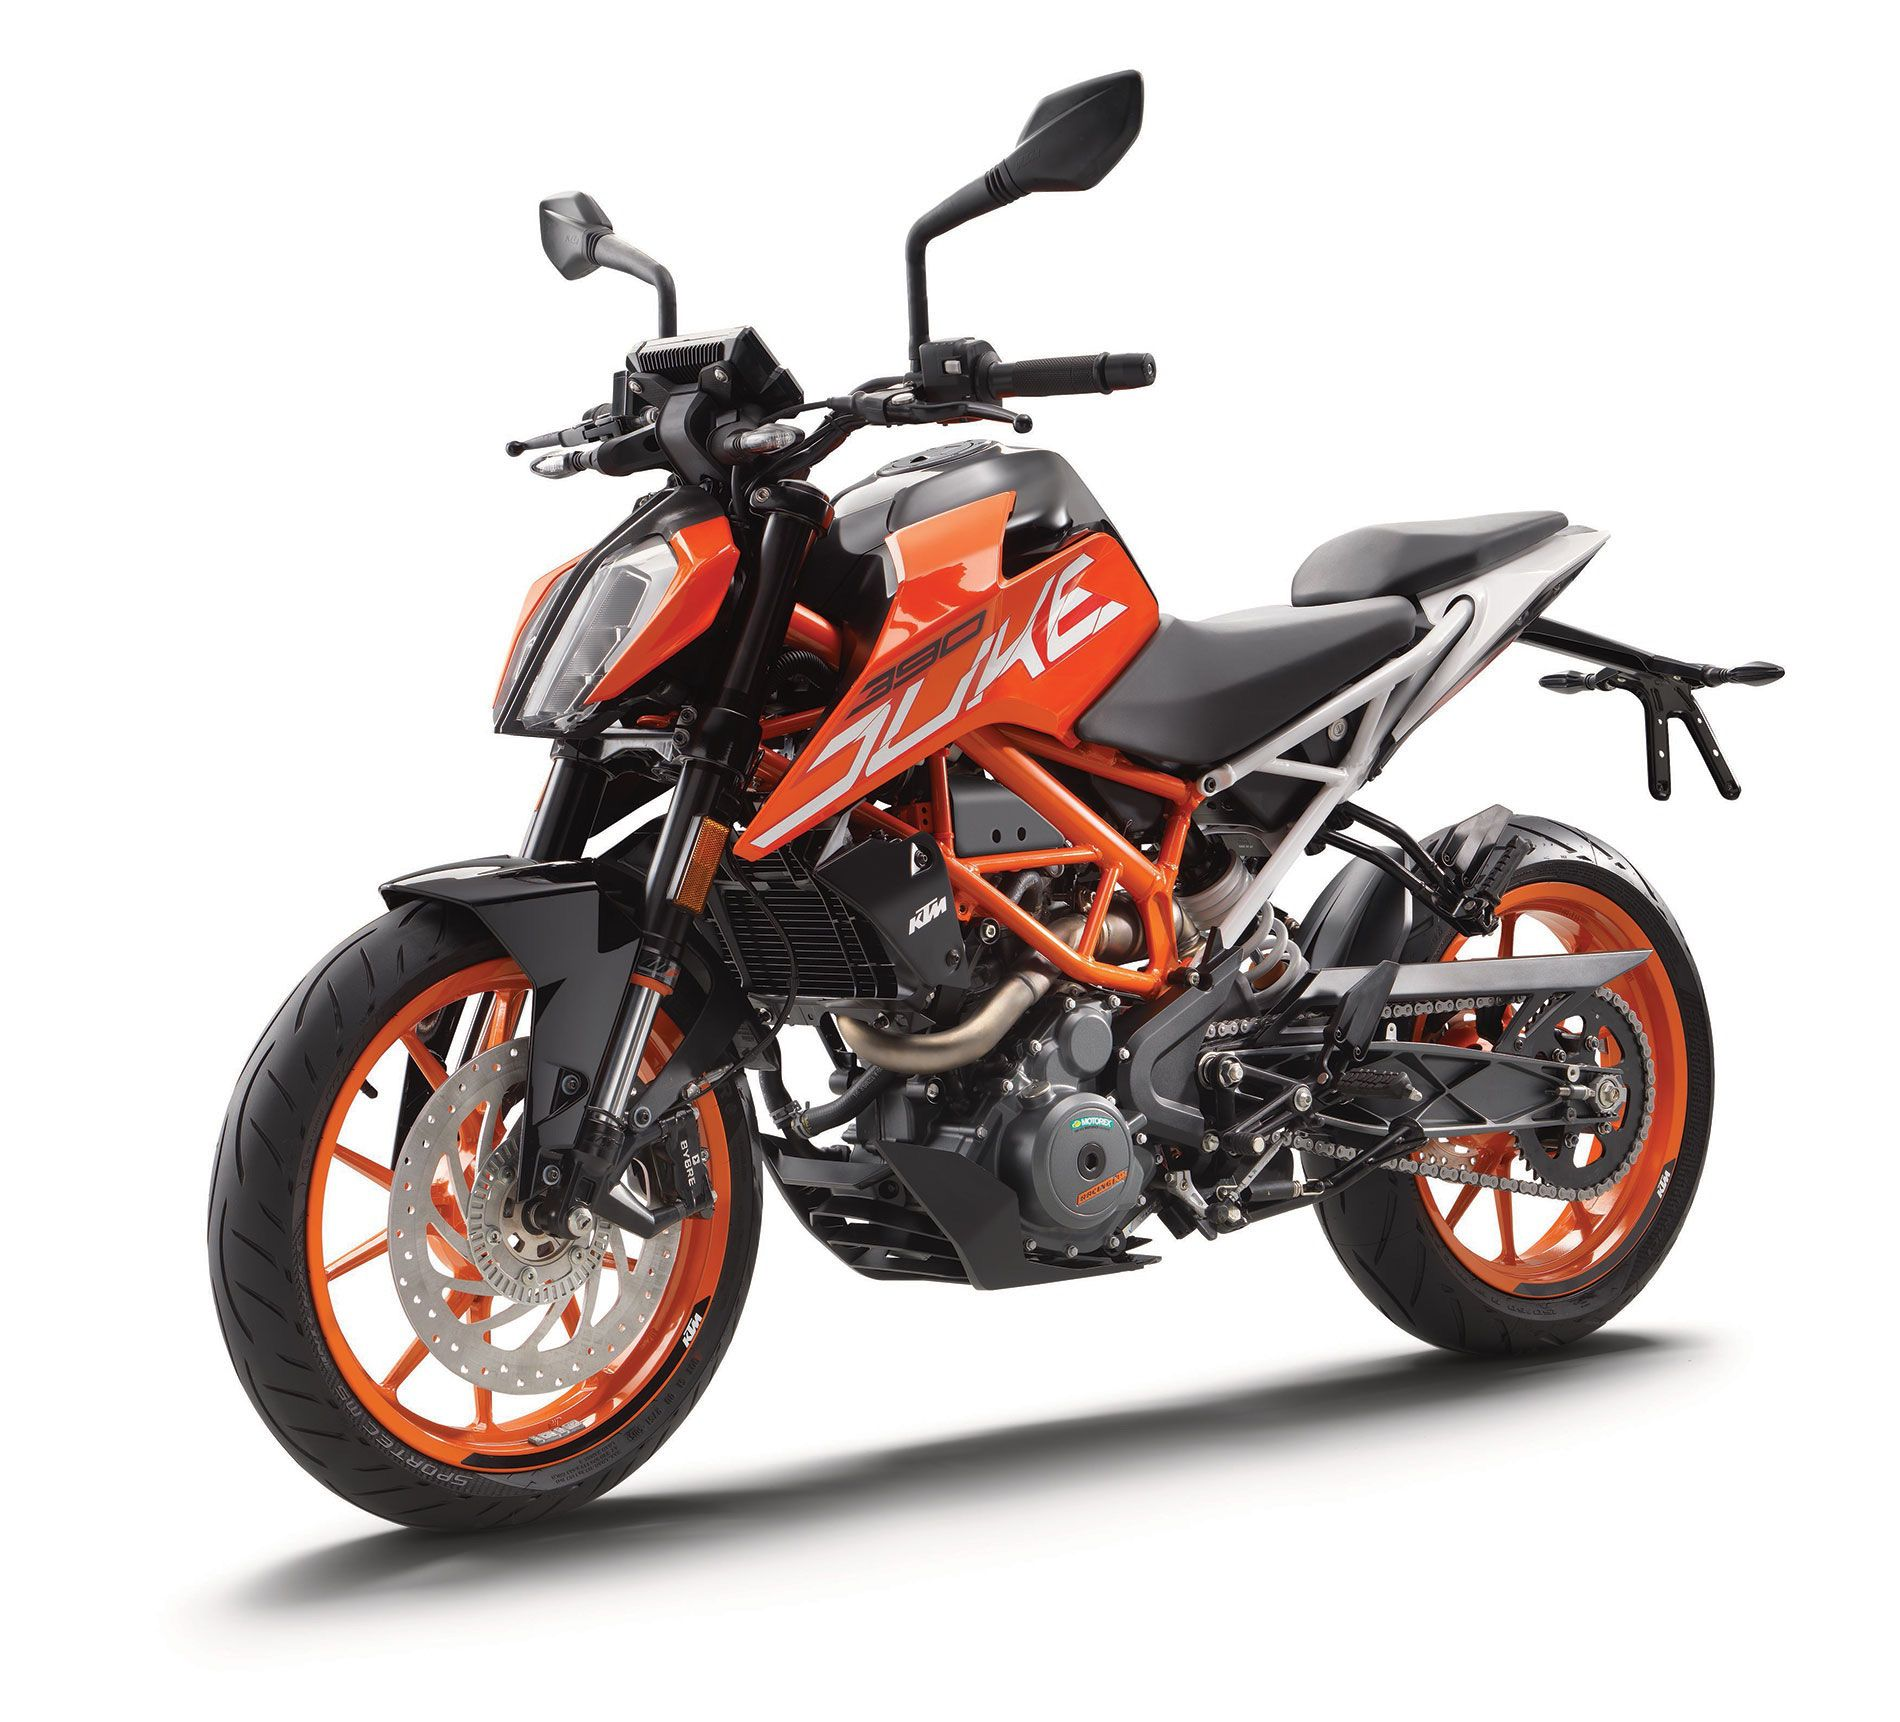 Ktm 390 Duke Building On And Refining Their Popular Small Road